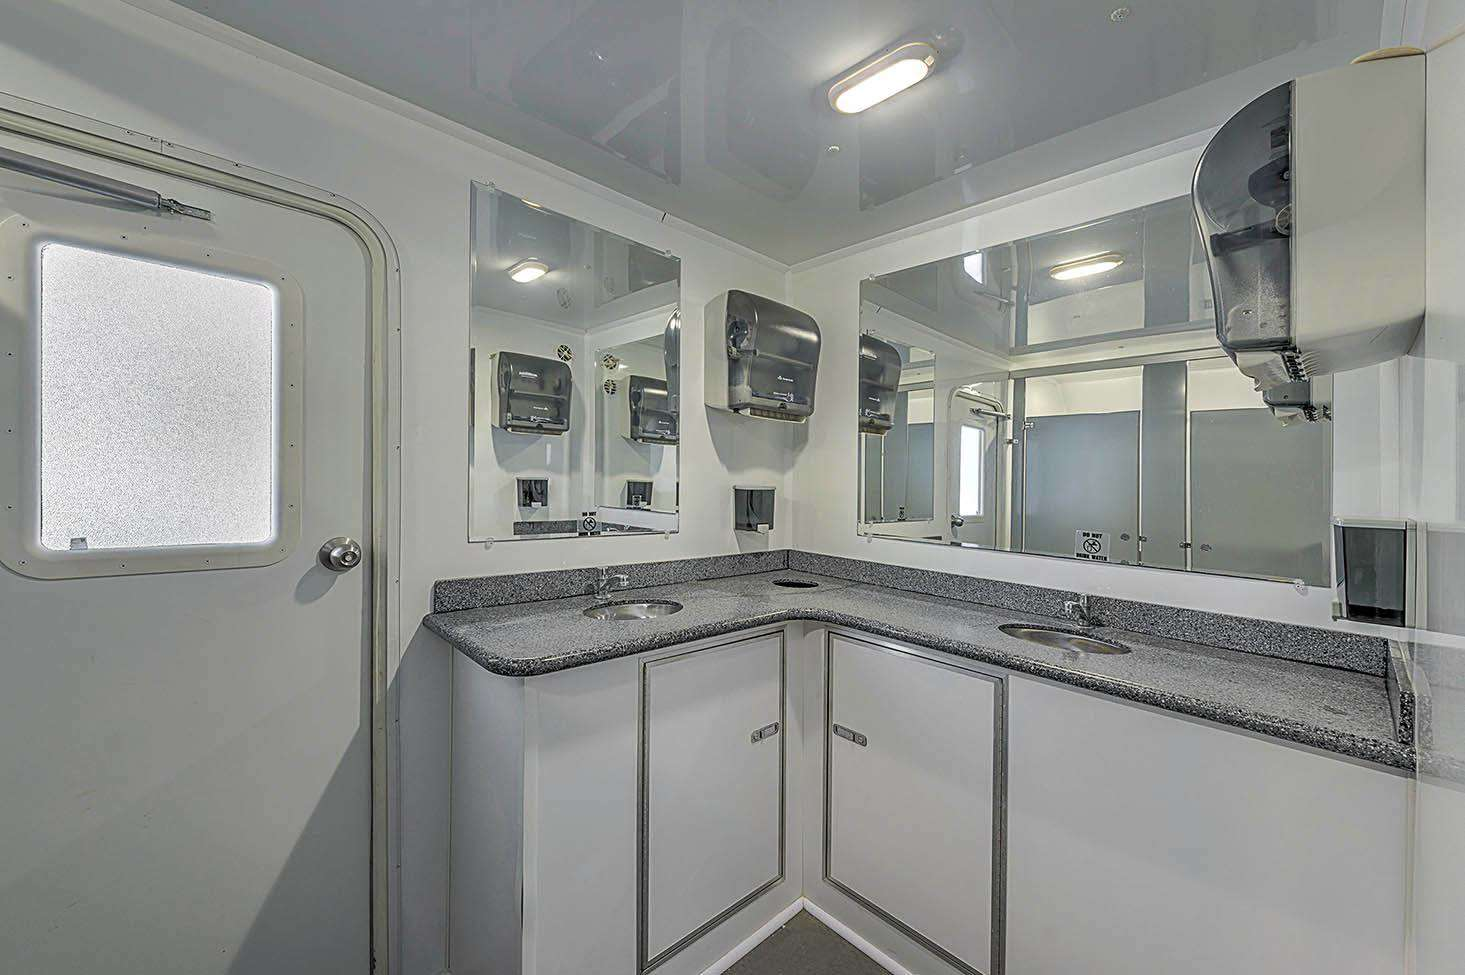 Commercial Restroom Trailer - Interior